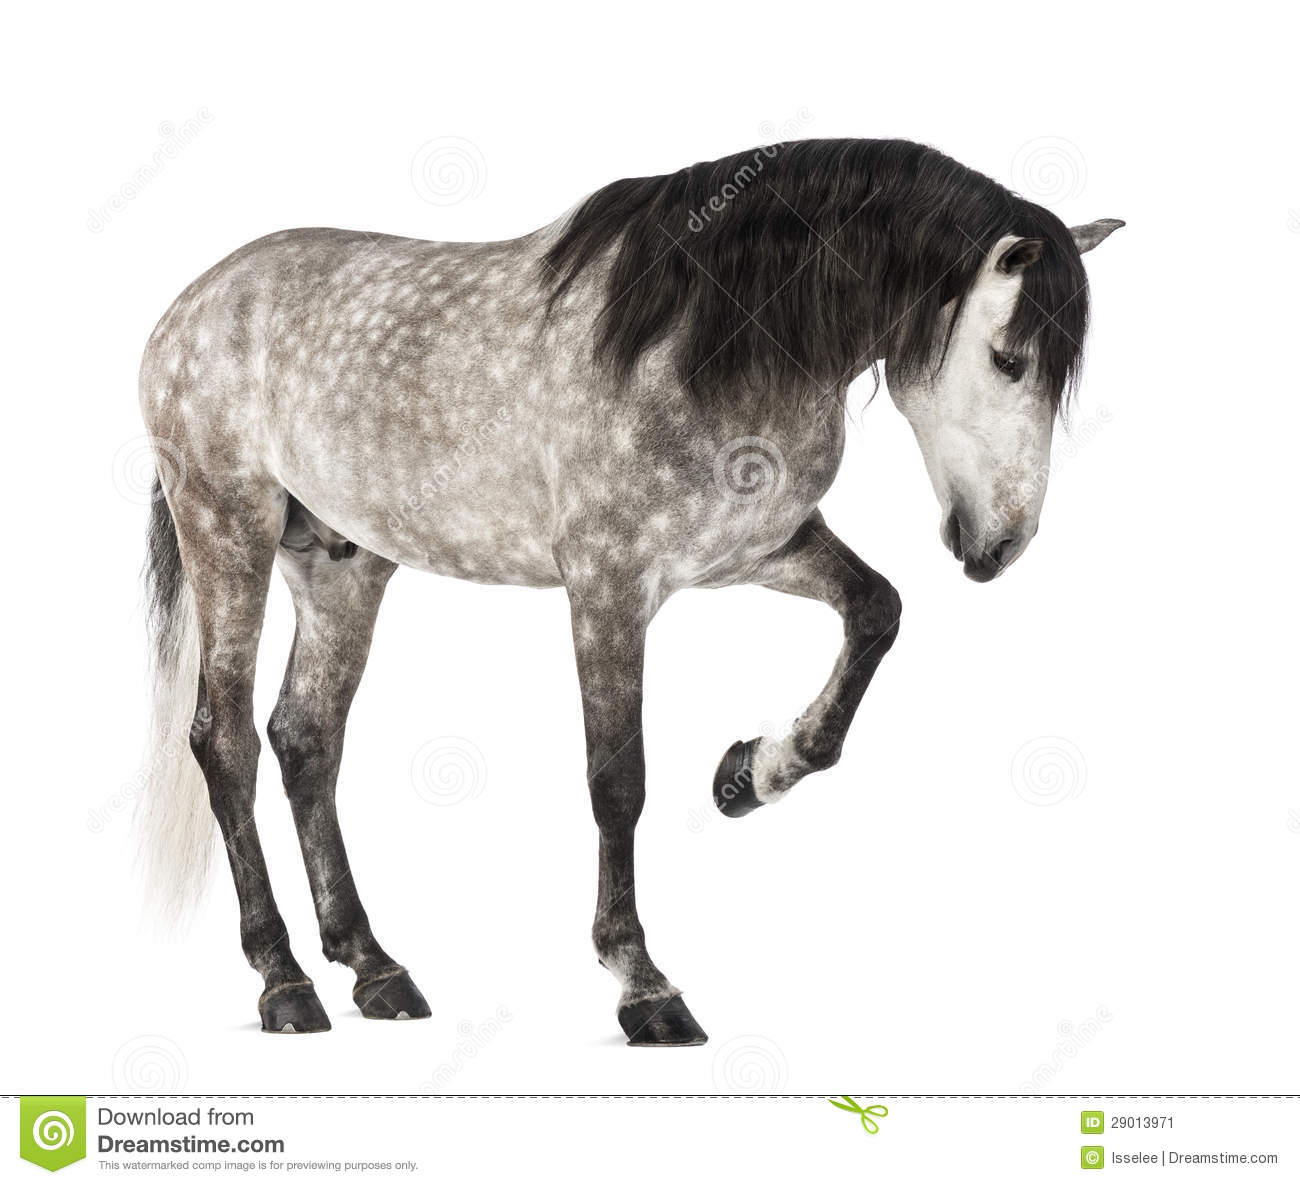 how to say horse in spanish